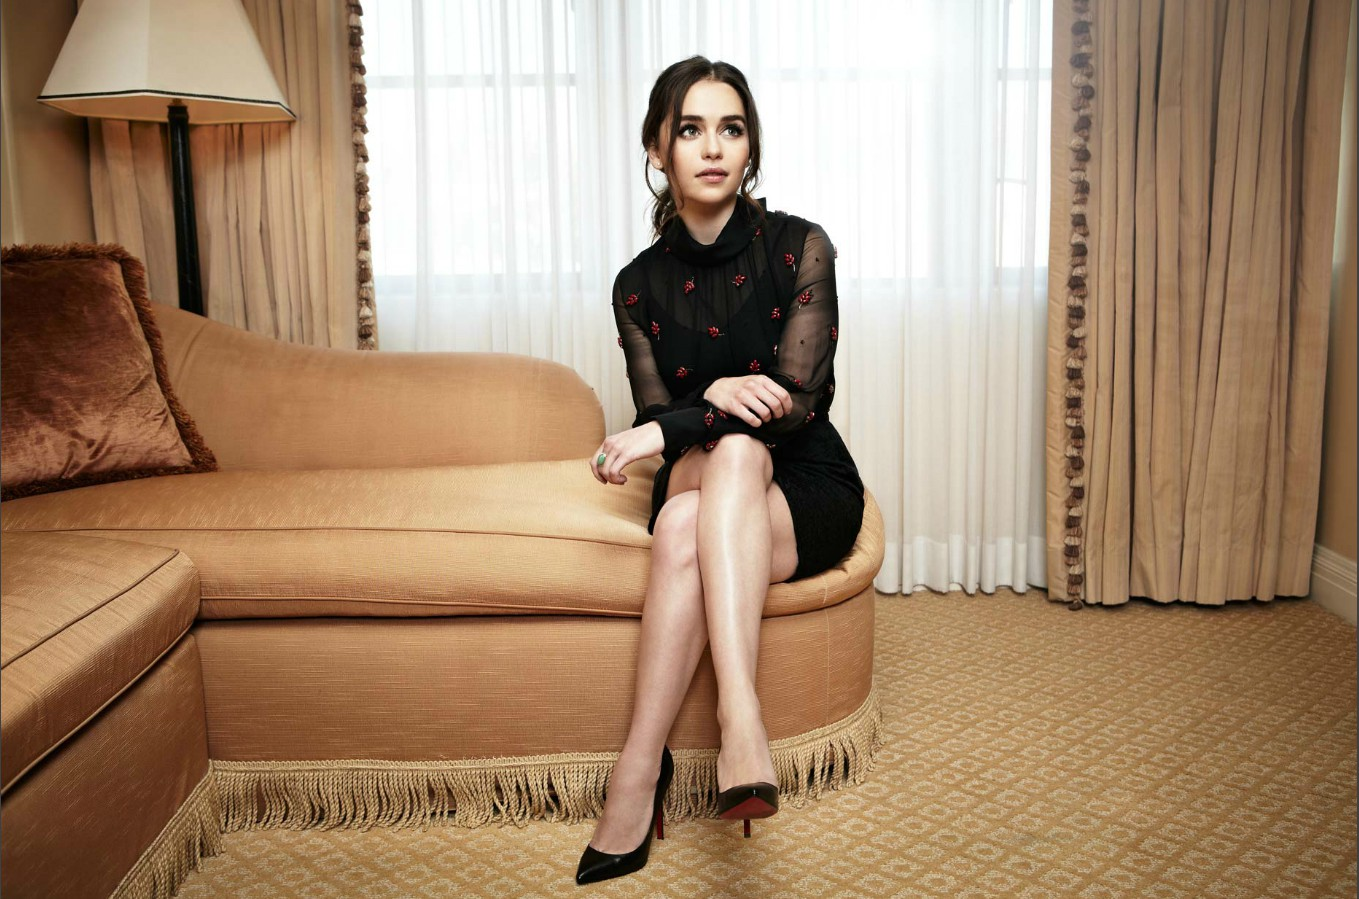 emilia clarke beautiful pose and stylish sitting in sofa still mobile hd background download free images